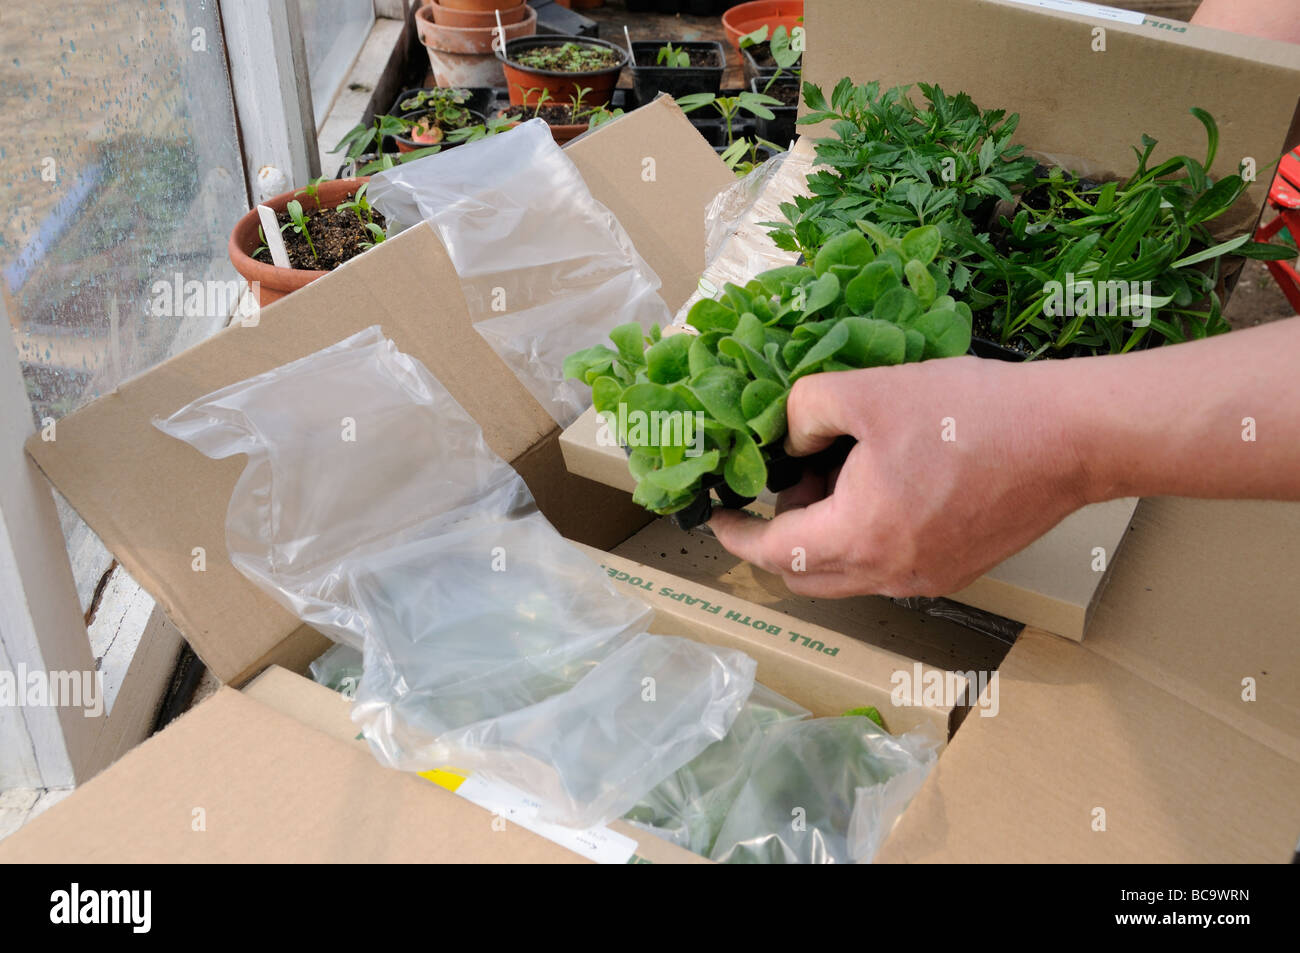 Opening Box Of Mail Order Bought Plants Showing Plug Plants And